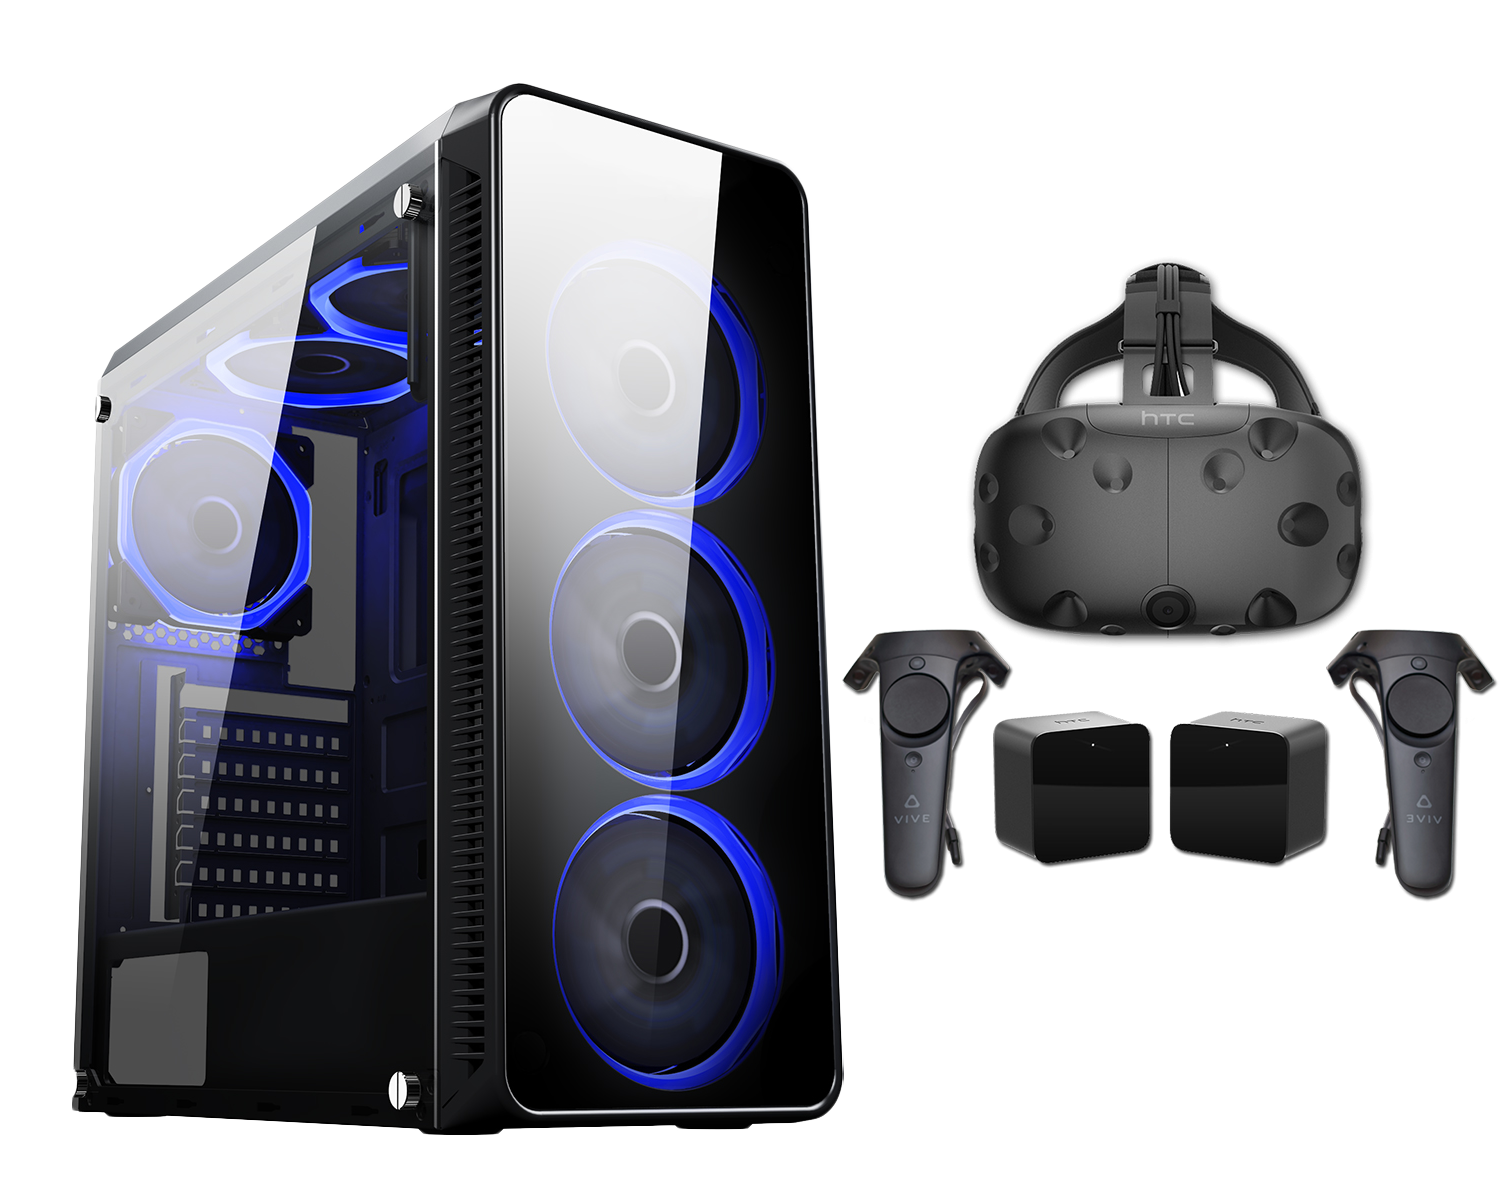 HST Blaze Ryzen 5 2600 8GB GTX1660 6GB Customisable HTC Vive PC Bundle